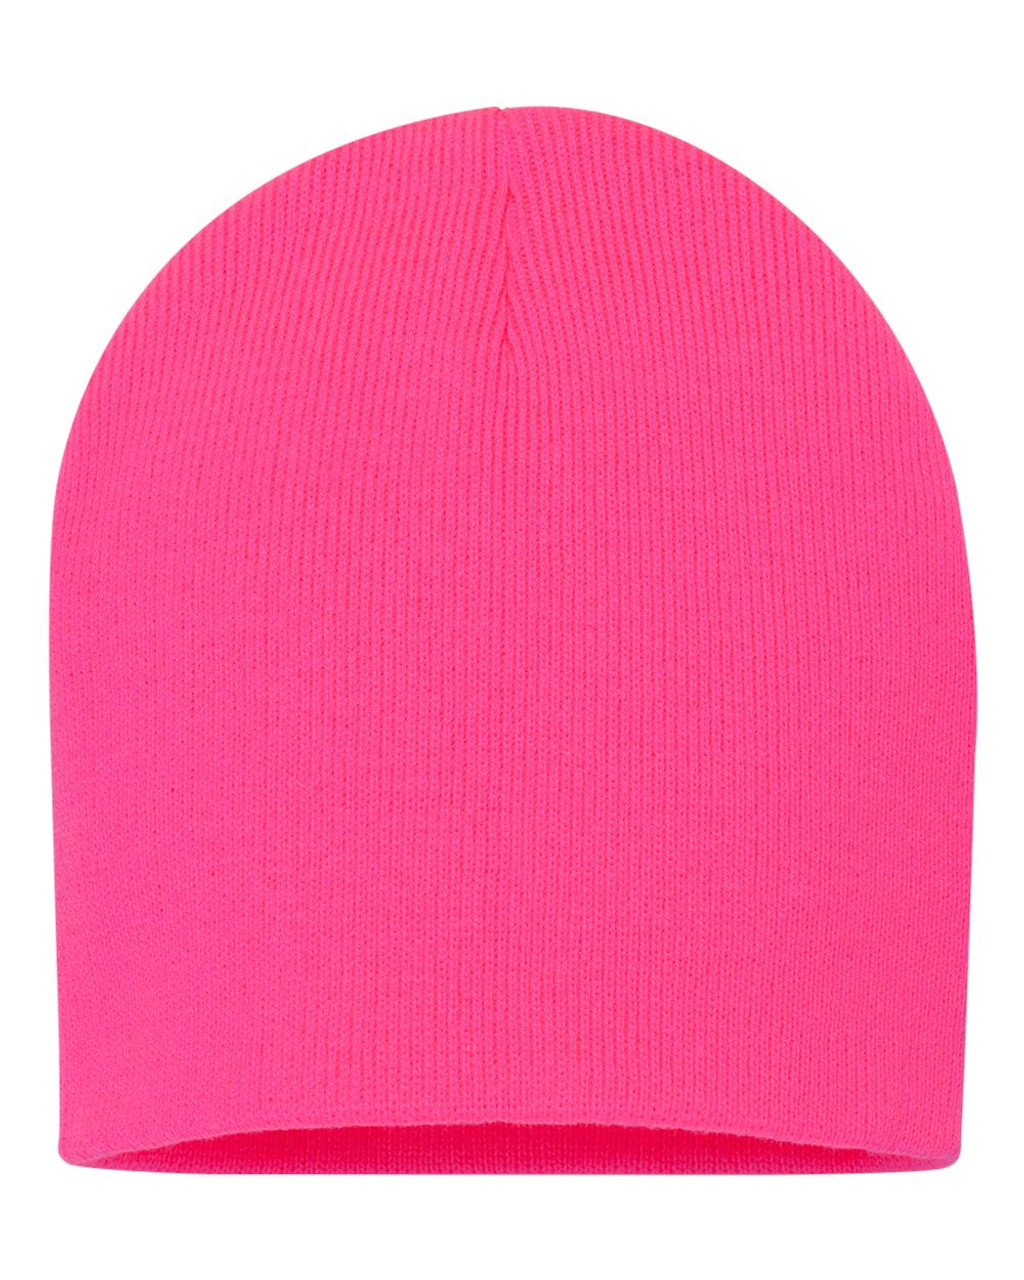 "Neon Pink - SP08 Sportsman Acrylic Knit 8"" Toque 